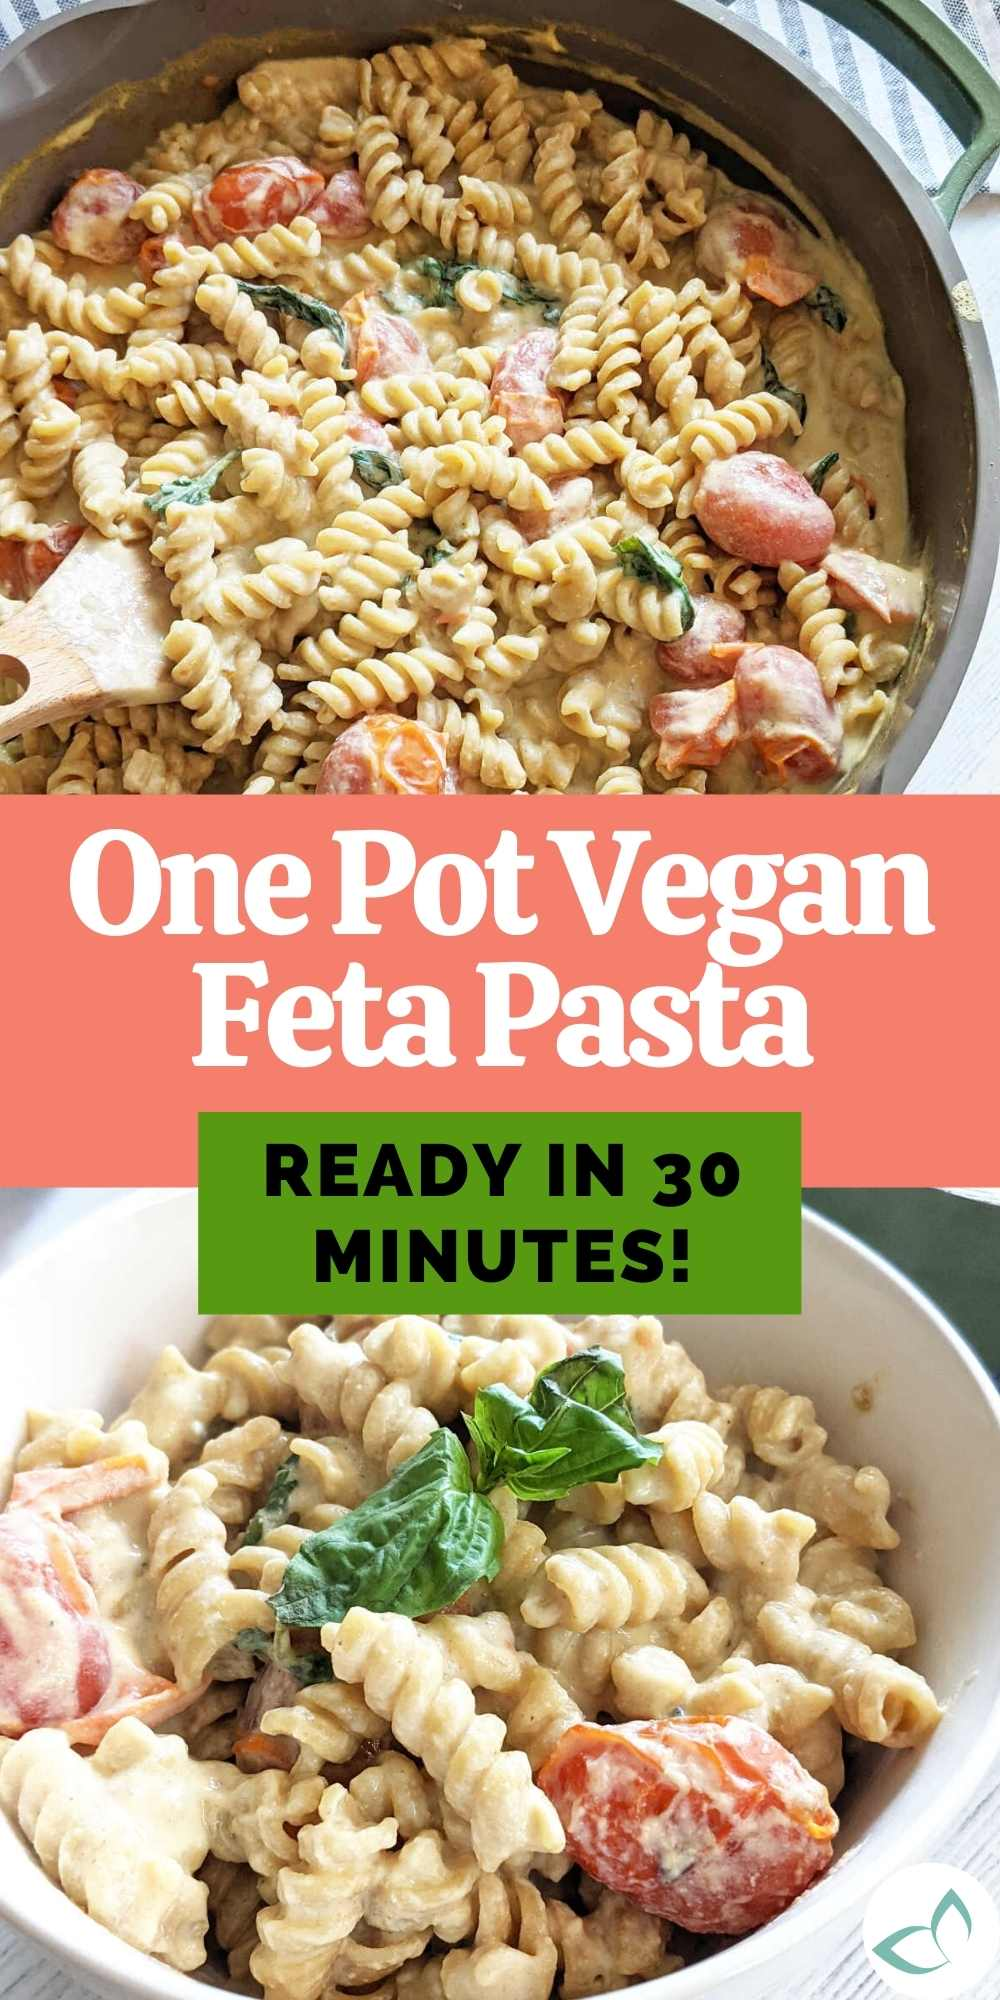 One pot vegan feta pasta is an adaption from the viral baked feta pasta. Make in one pot in less time for the same great flavor!